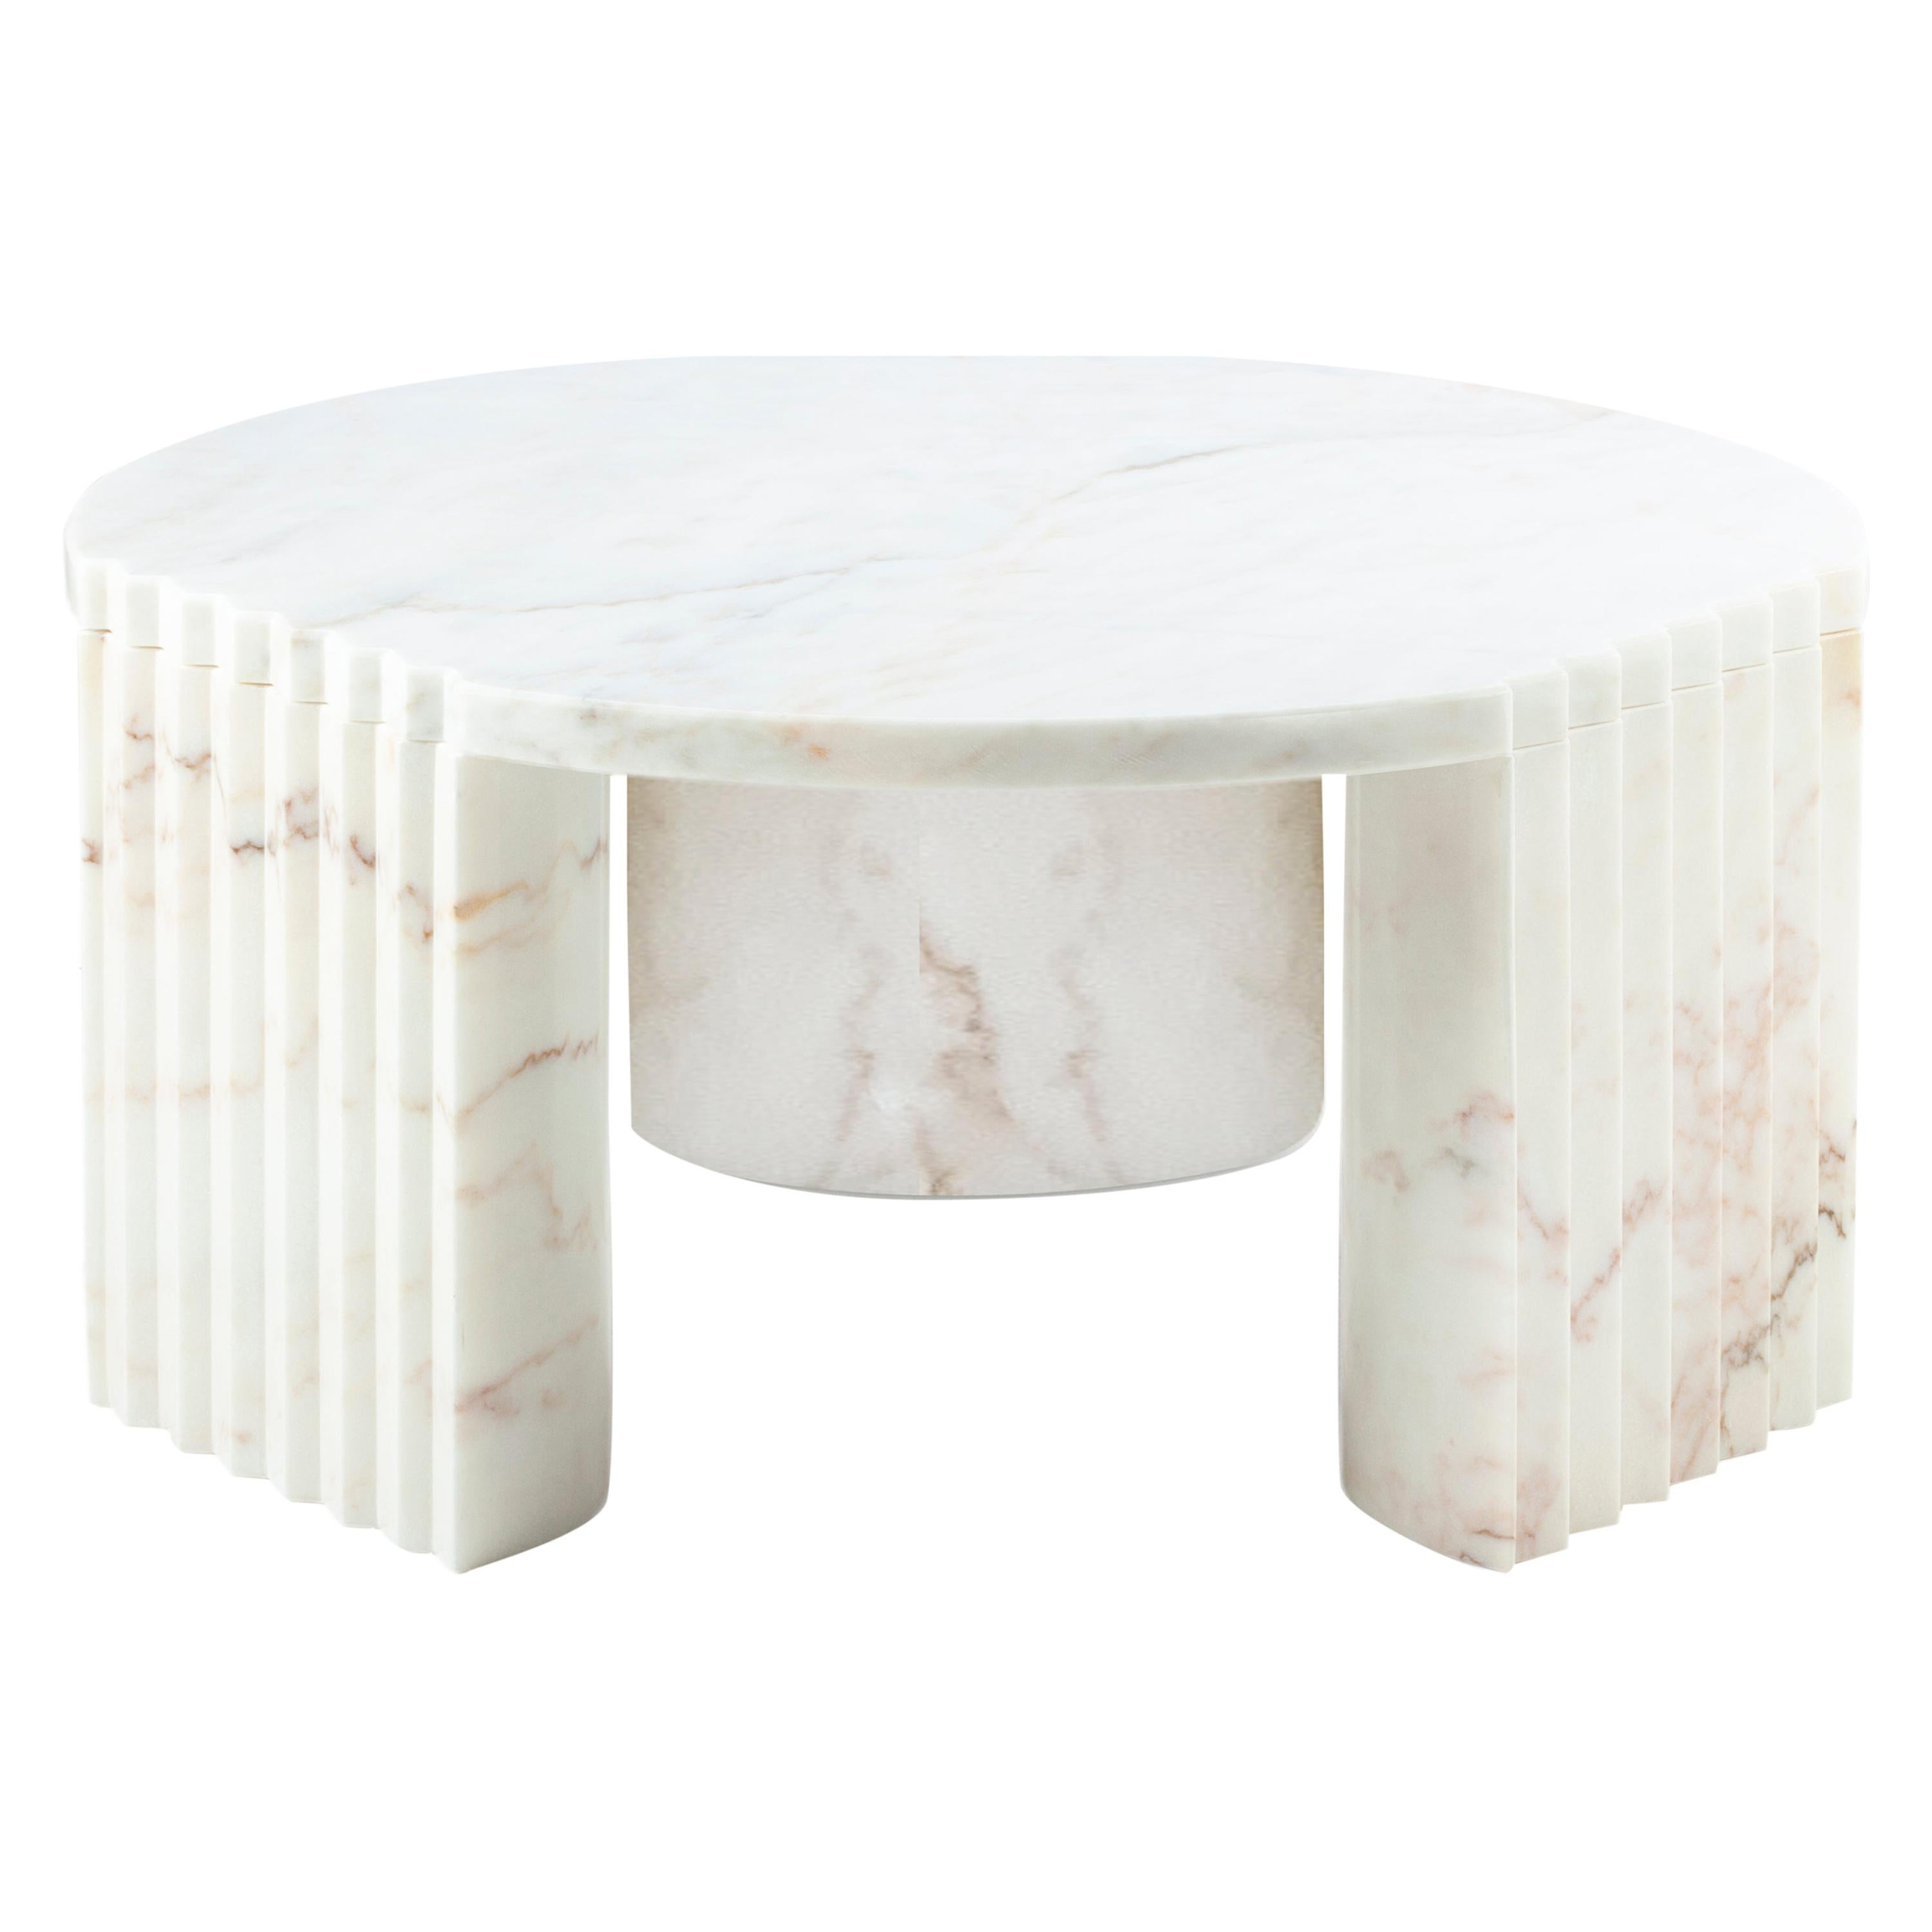 Caravel, 21st Century European Side Table White Marble by Federico Peri